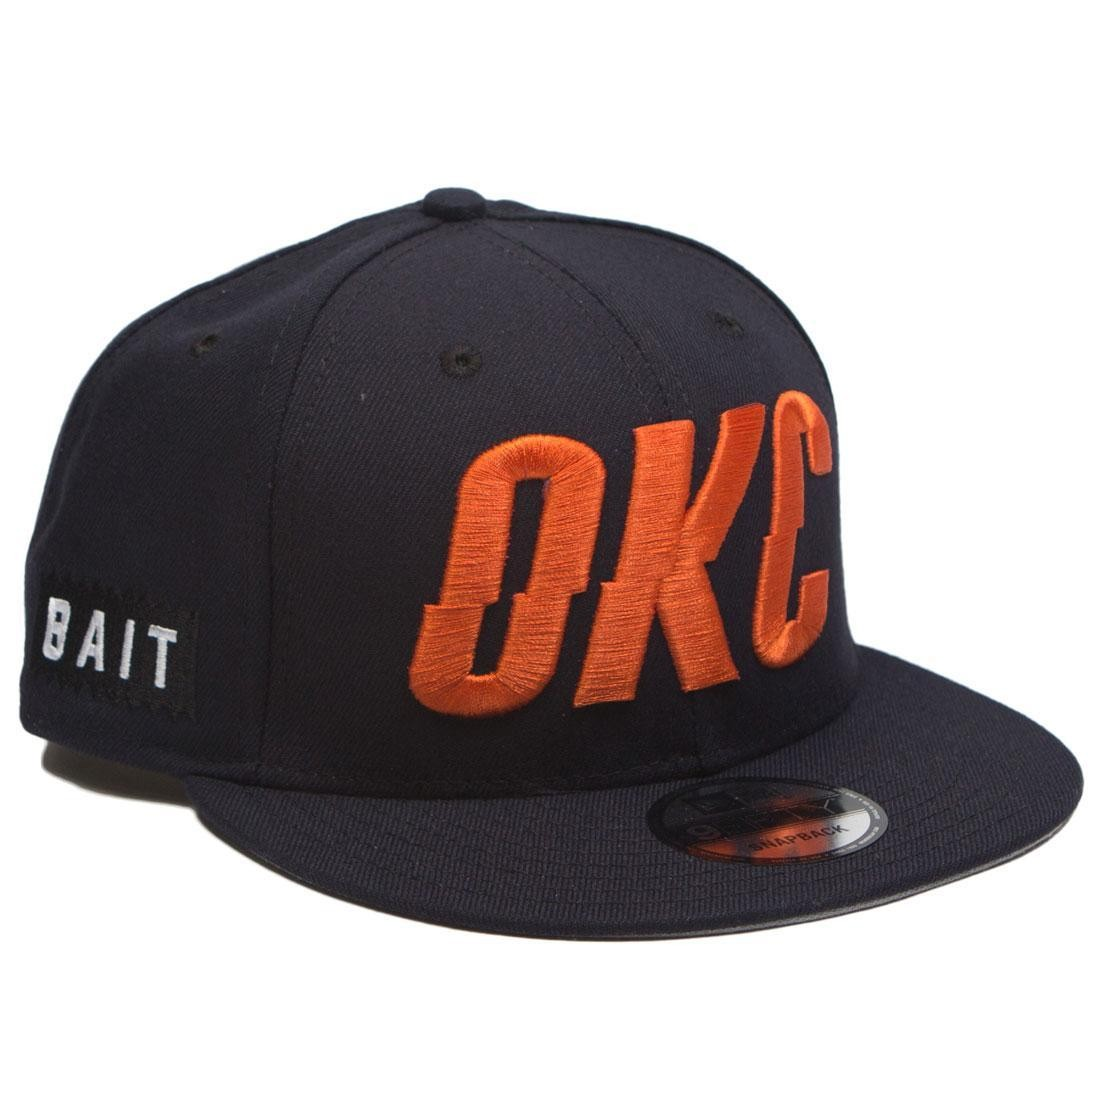 BAIT x NBA X New Era 9Fifty Oklahoma City Thunder Alt OTC Snapback Cap (navy)